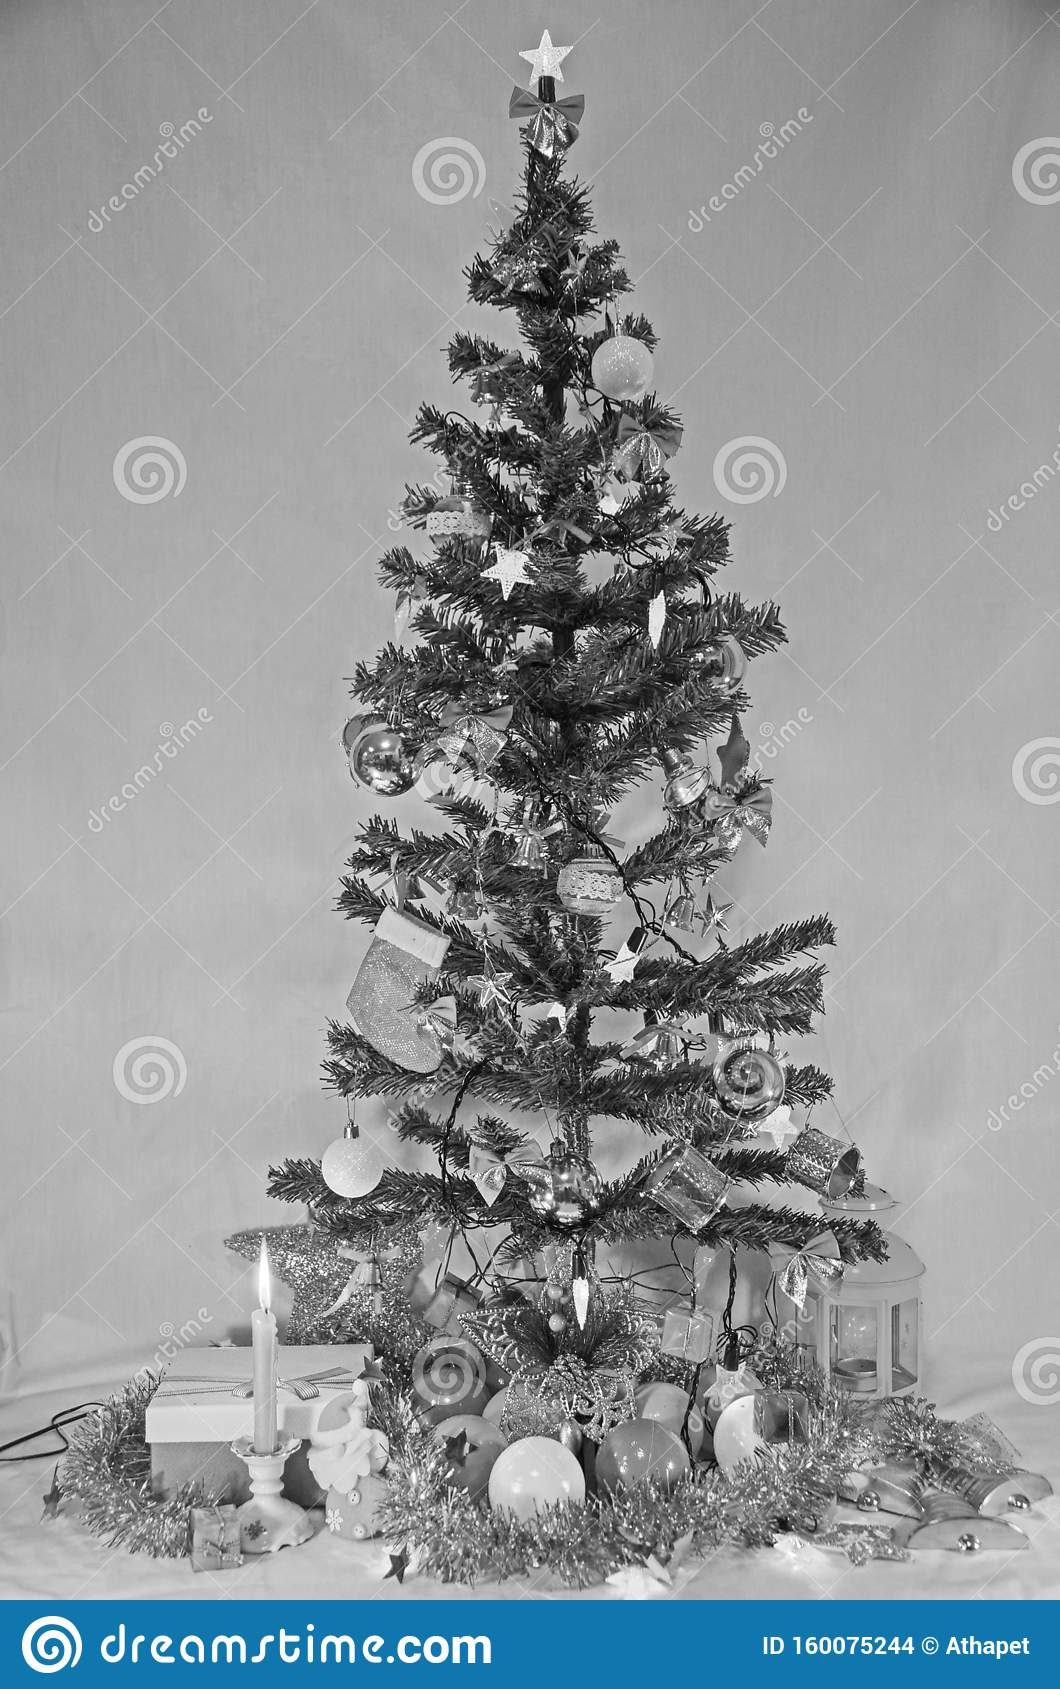 Black And White Christmas Tree Stock Photo Image Of Holy Design 160075244